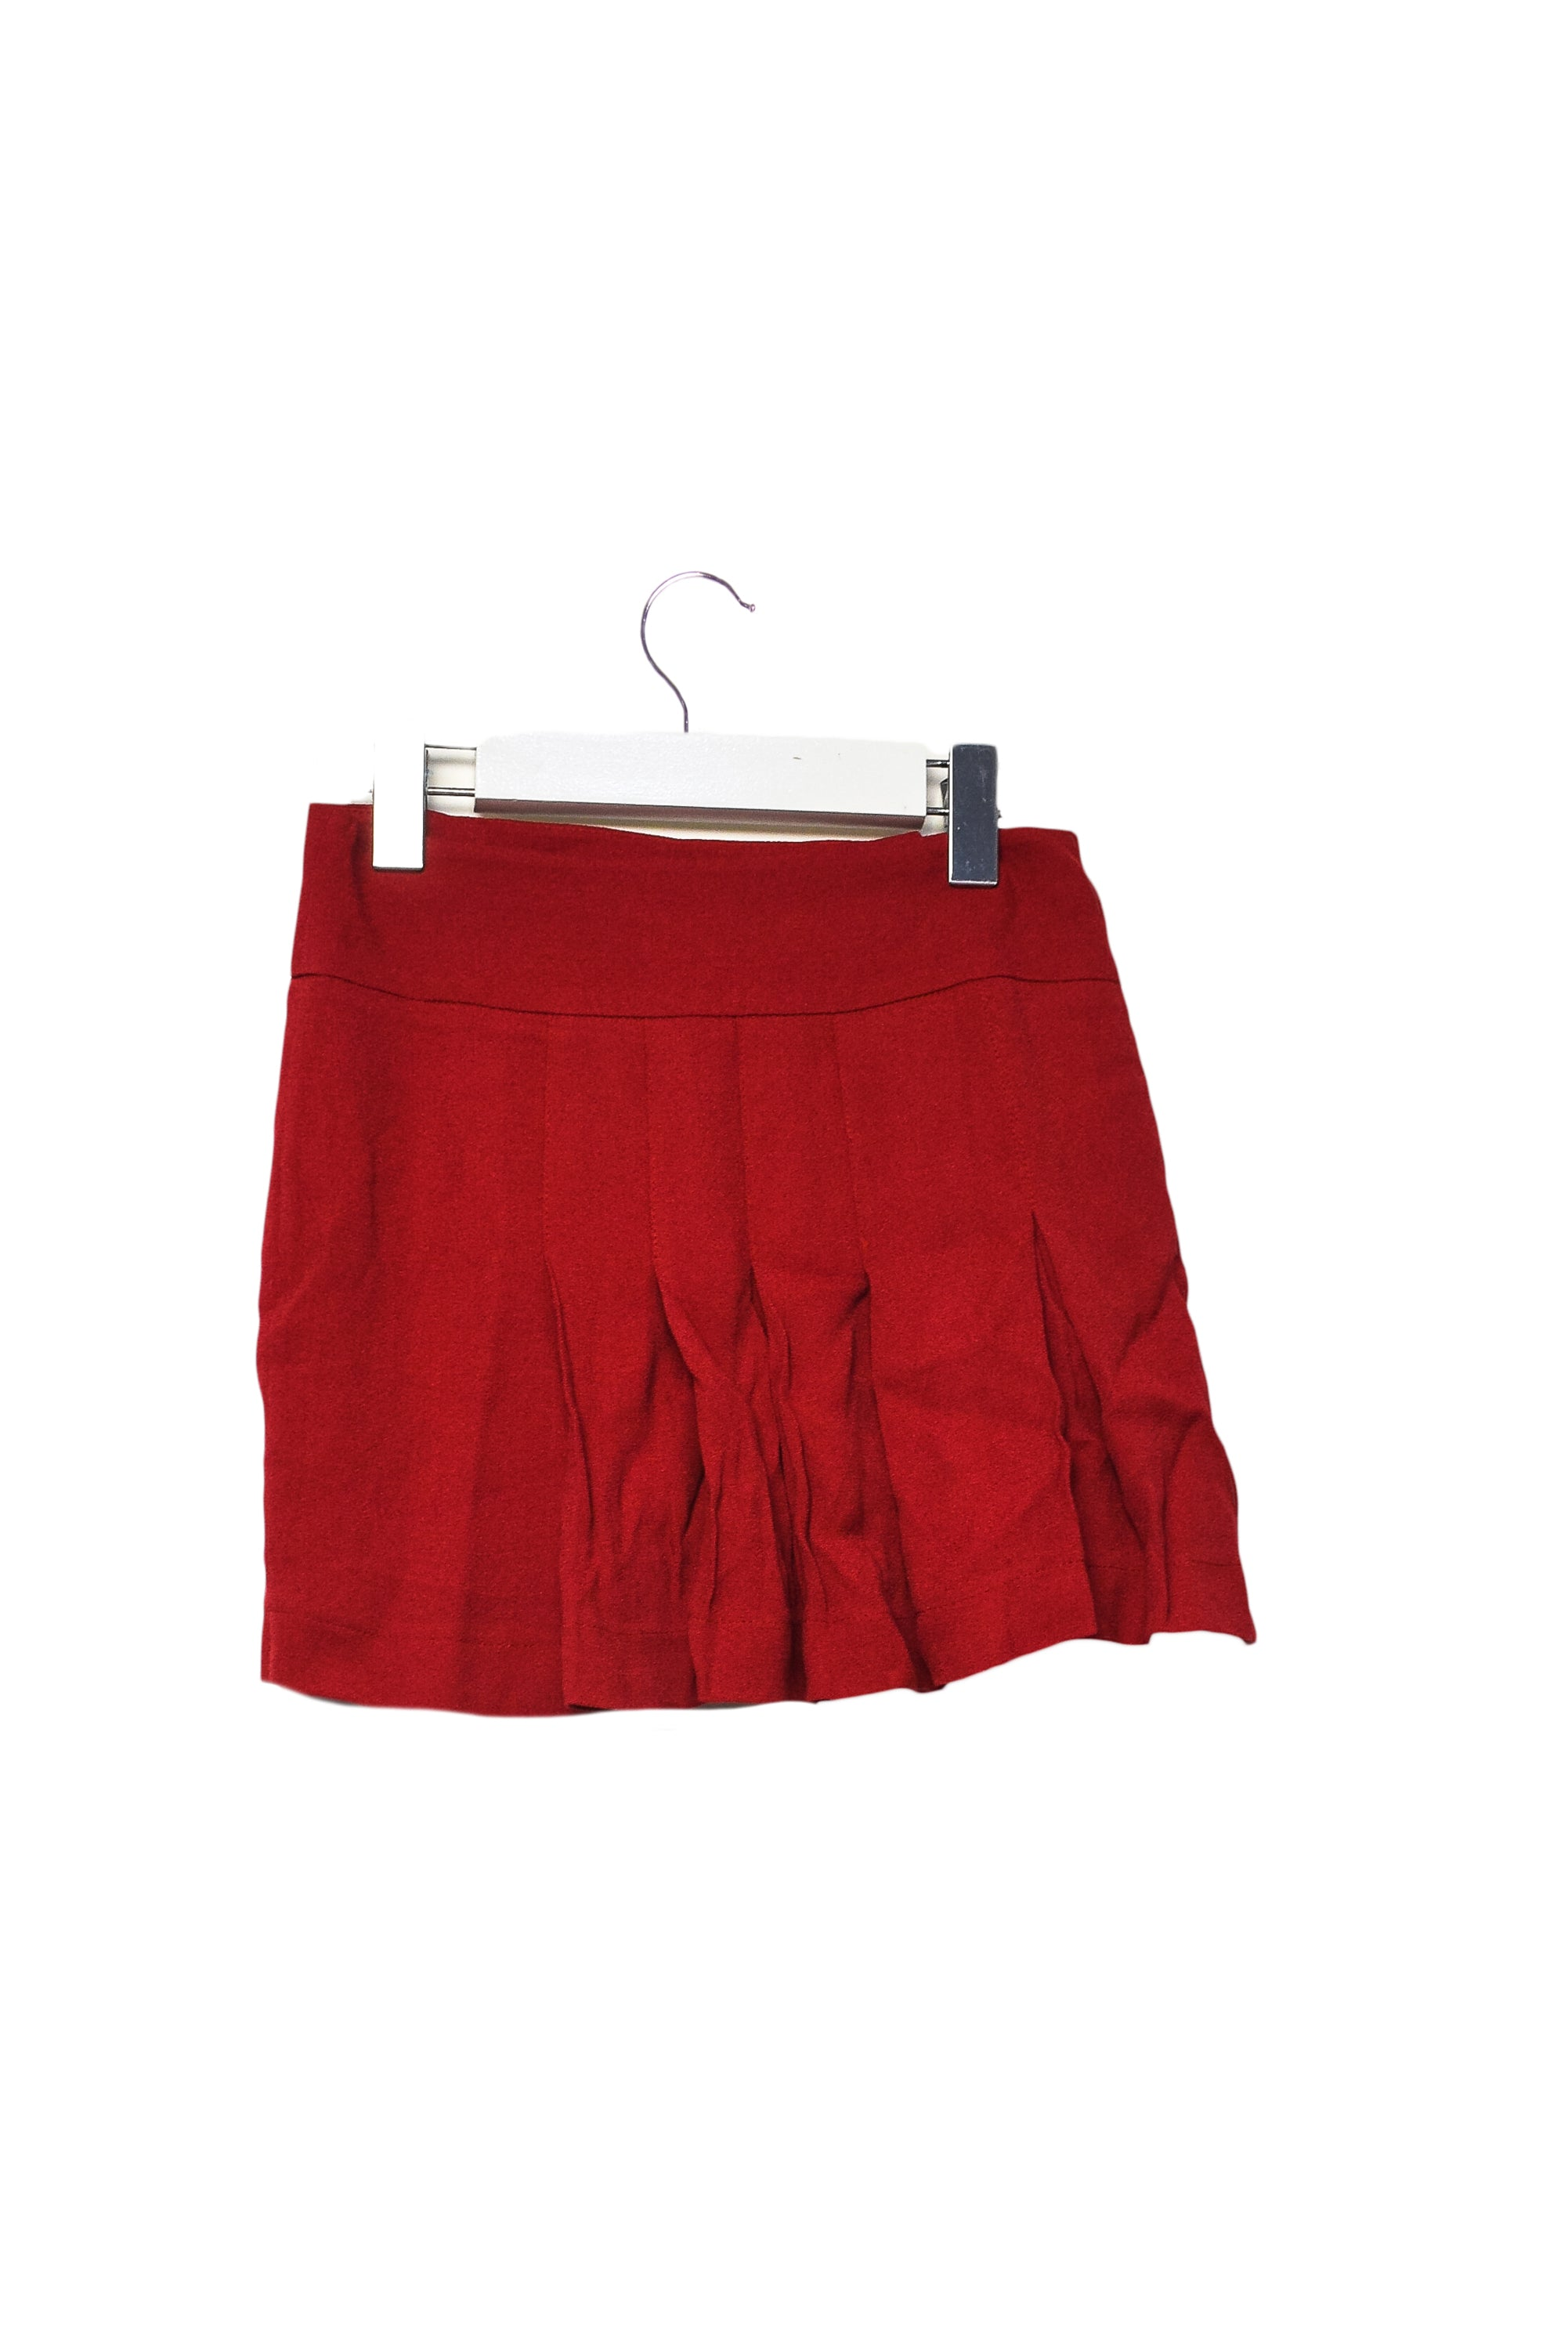 10045928 Marni Kids~Short Skirt 4T at Retykle